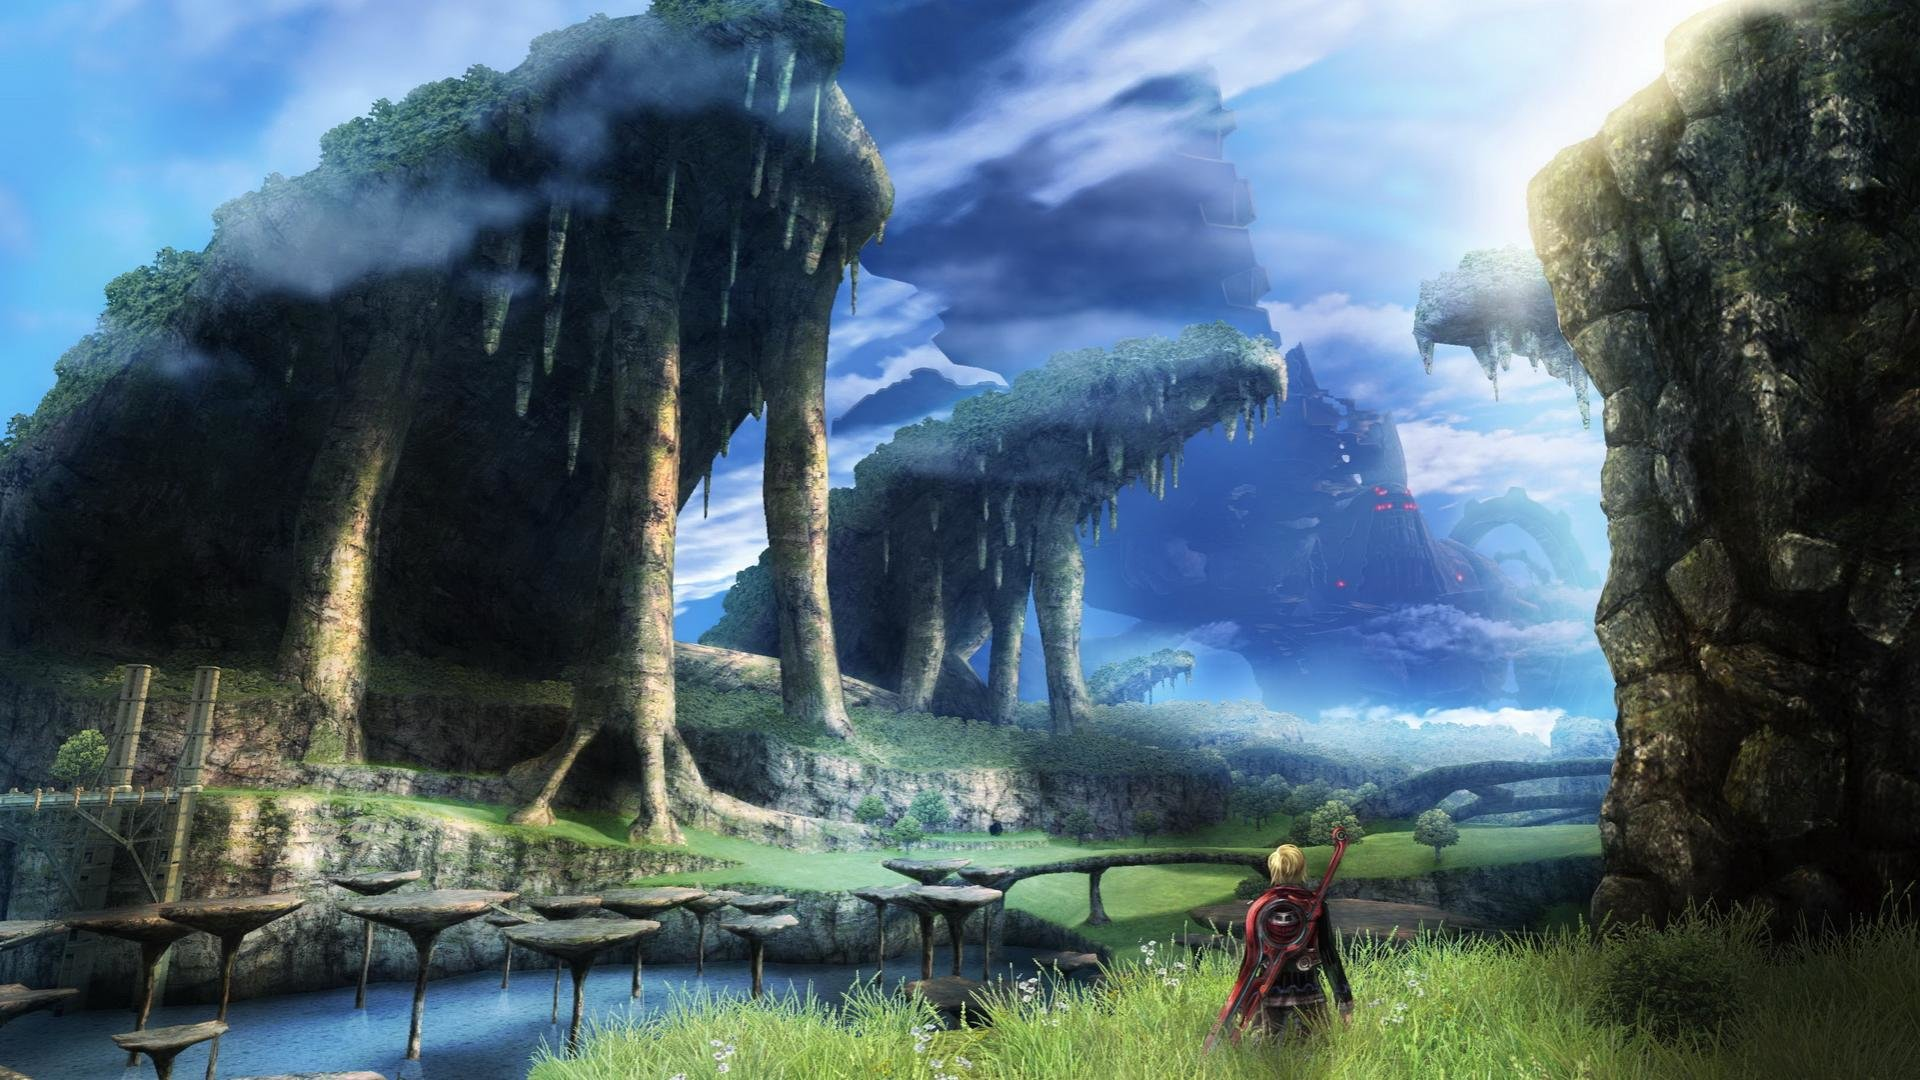 Xenoblade Chronicles Wallpapers 1920x1080 Full Hd 1080p Desktop Backgrounds